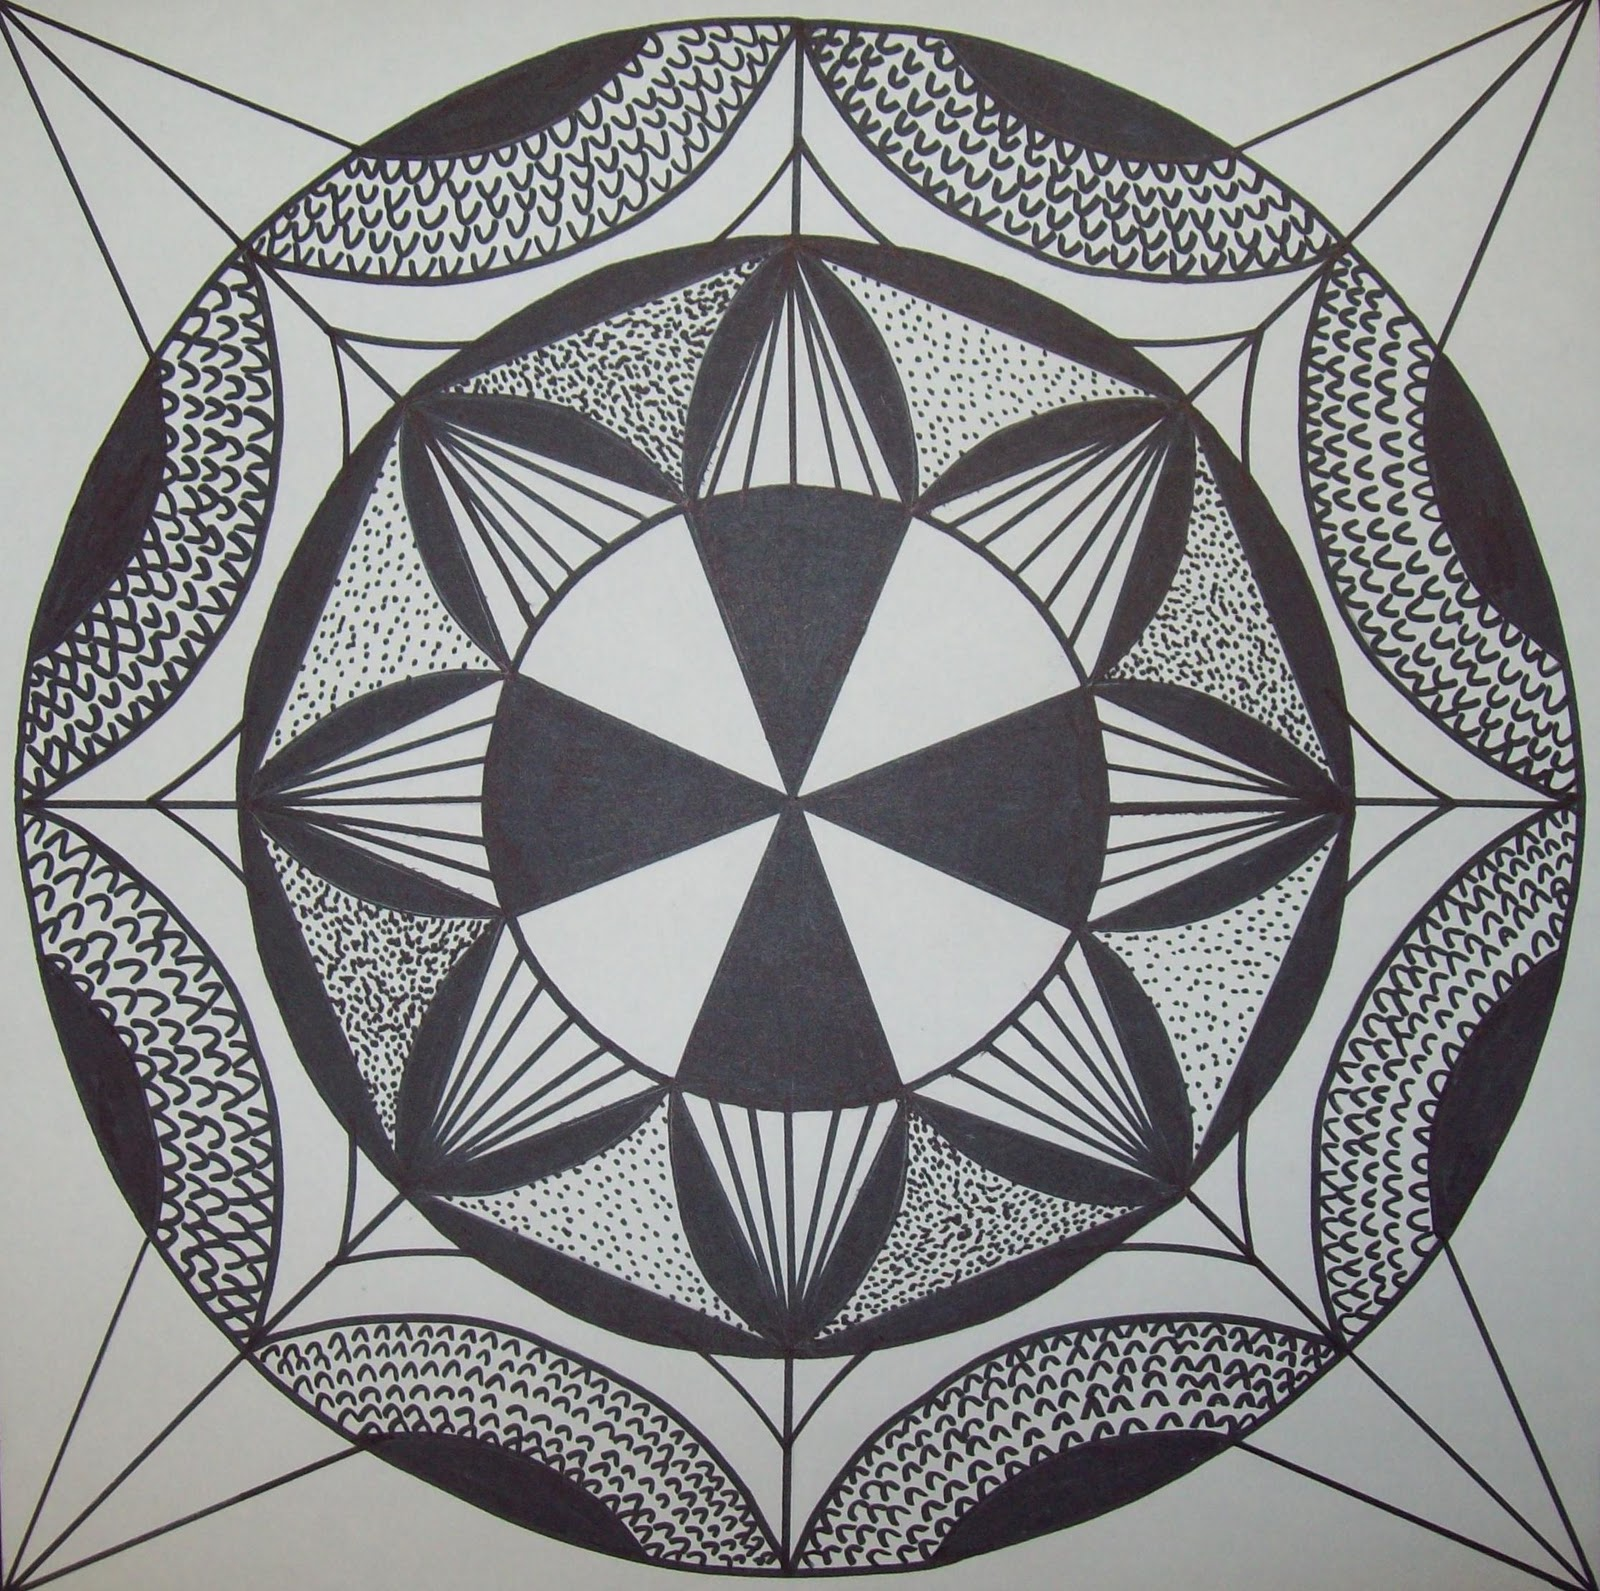 Motif Printmaking Lessons Tes Teach. Designer Fractions - Symmetry